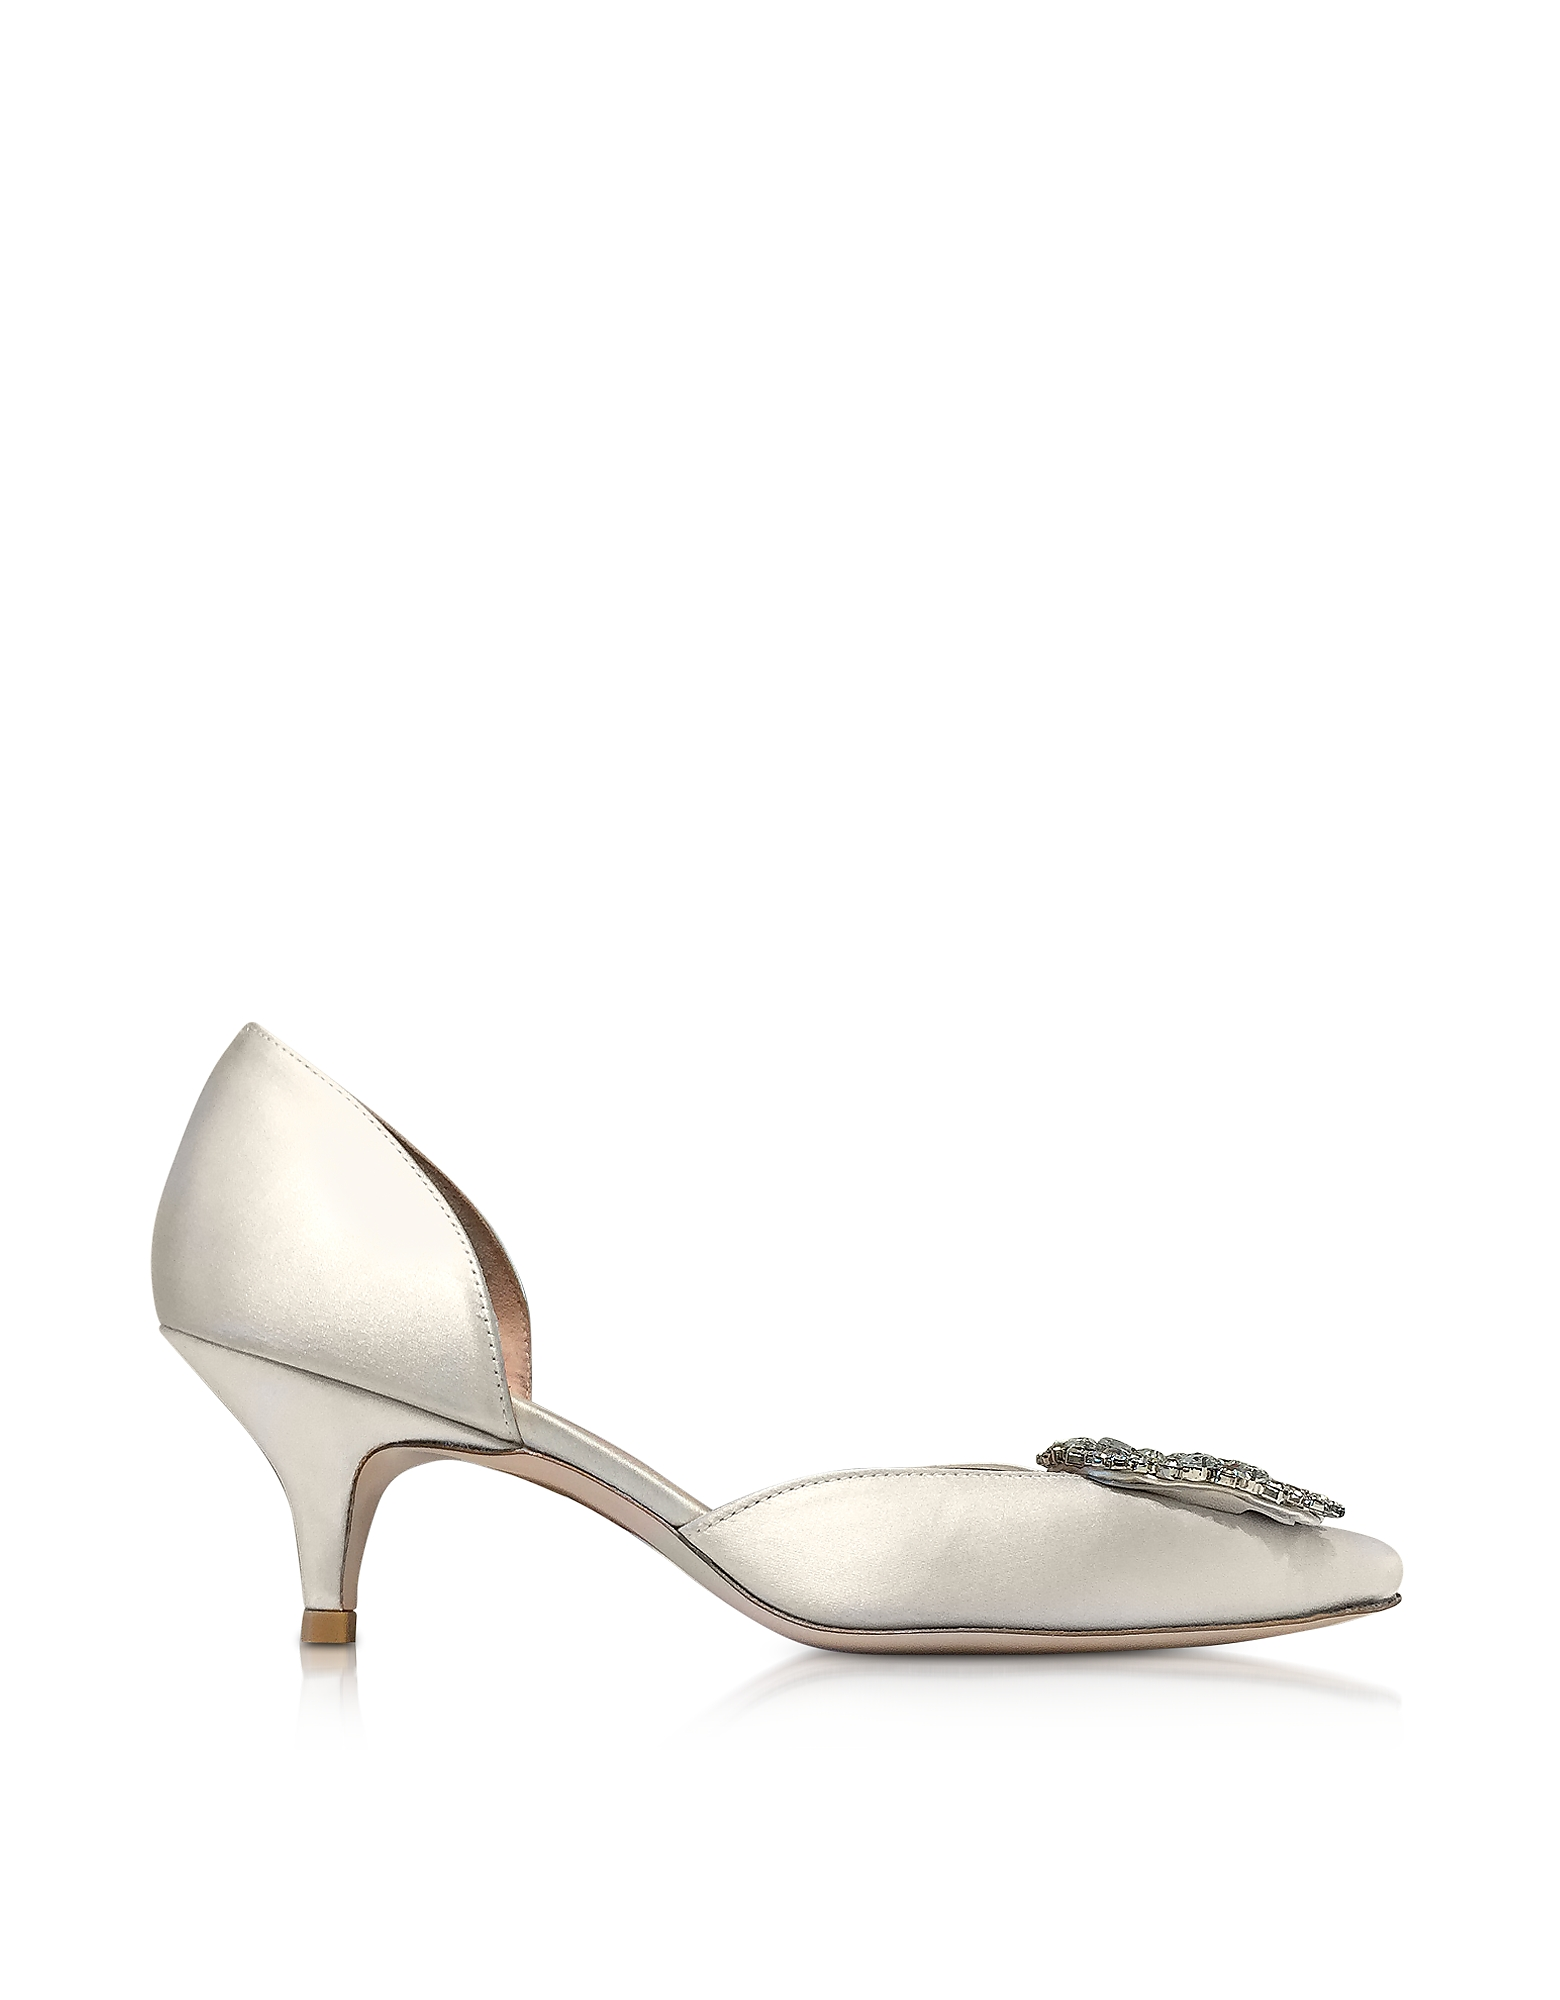 Stuart Weitzman Shoes, Firedance Ivory Satin Pointed Toe Kitten Heel Pumps w/Crystals